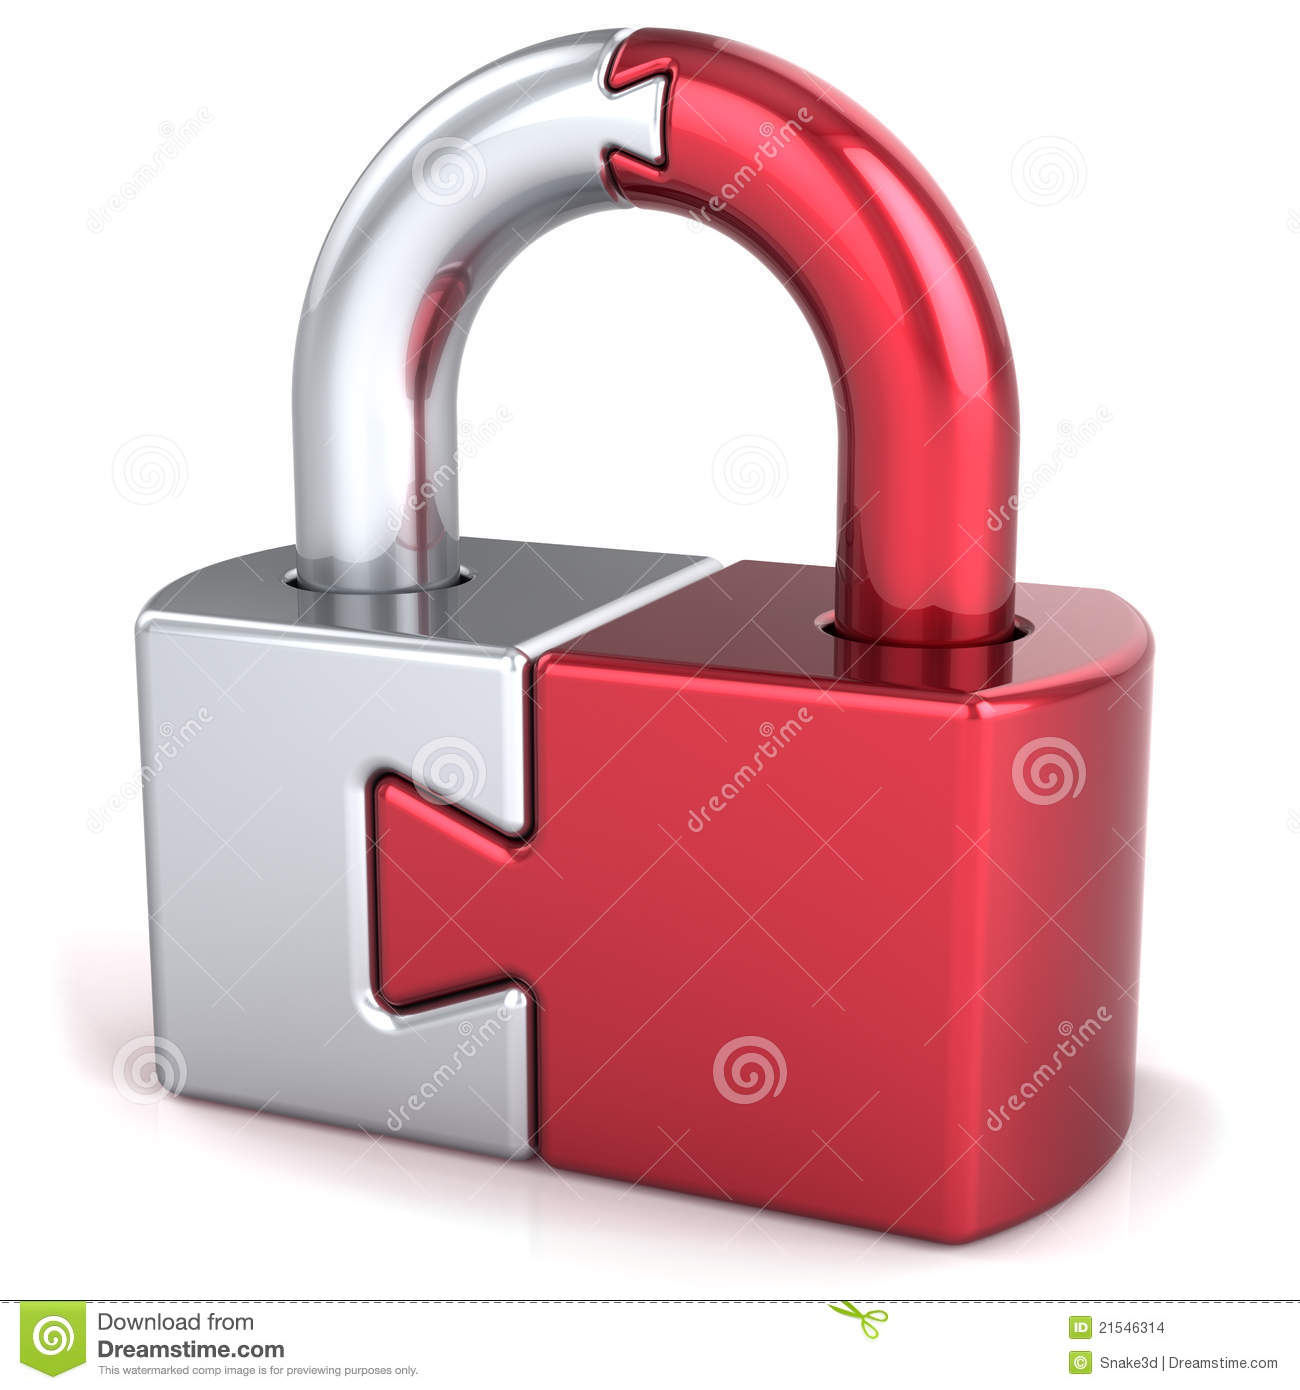 Puzzle Lock Padlock Security Concept Stock Images - Image ...